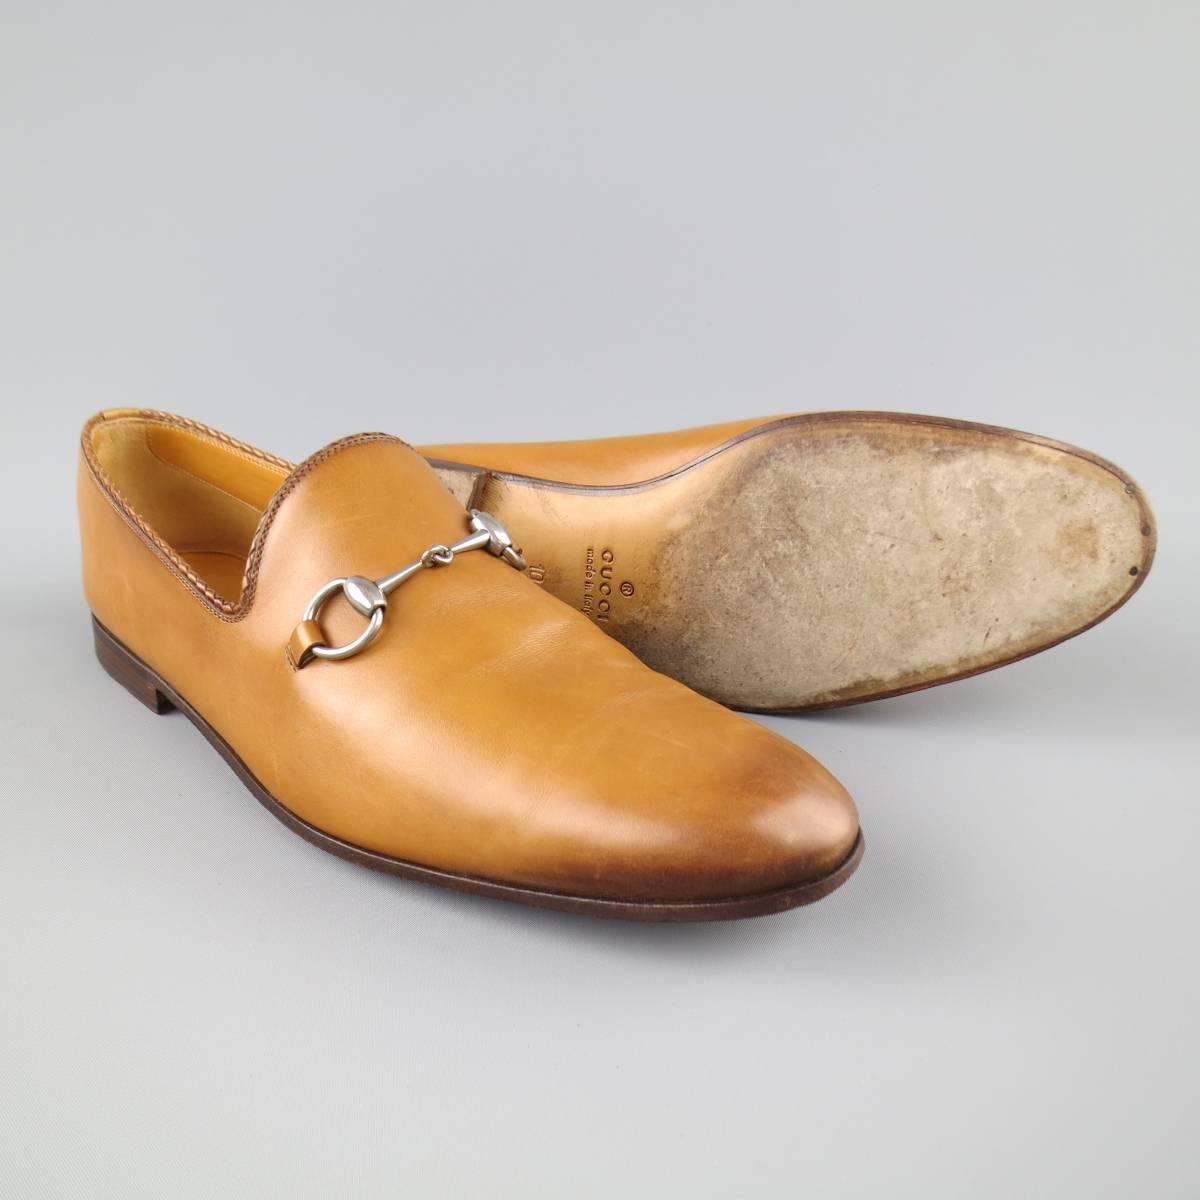 6f9ef873c GUCCI Size 11 Tan Obre Tip Leather Silver Horsebit Loafers at 1stdibs